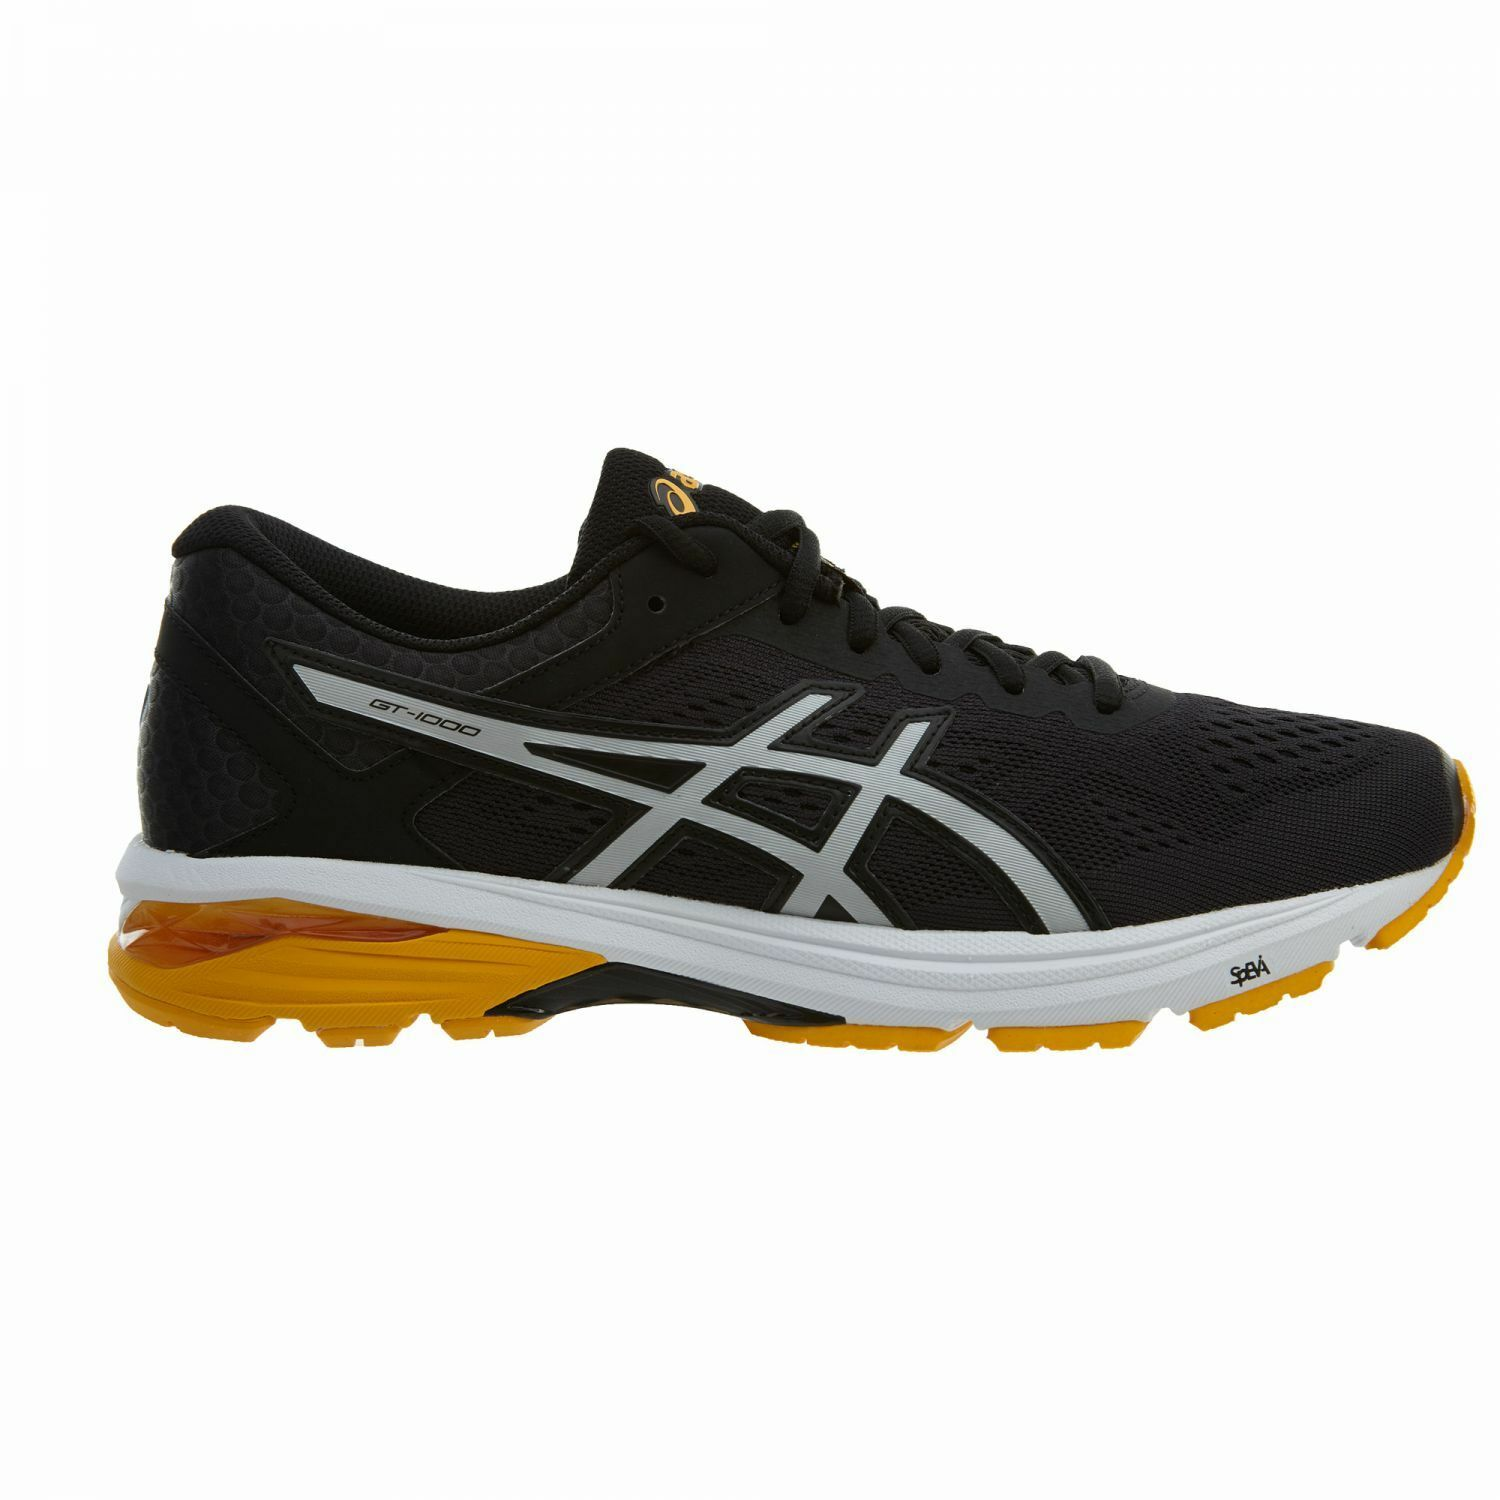 Asics GT-1000 6 Mens T7A4N-9093 Black Silver gold Fusion Running shoes Size 8.5